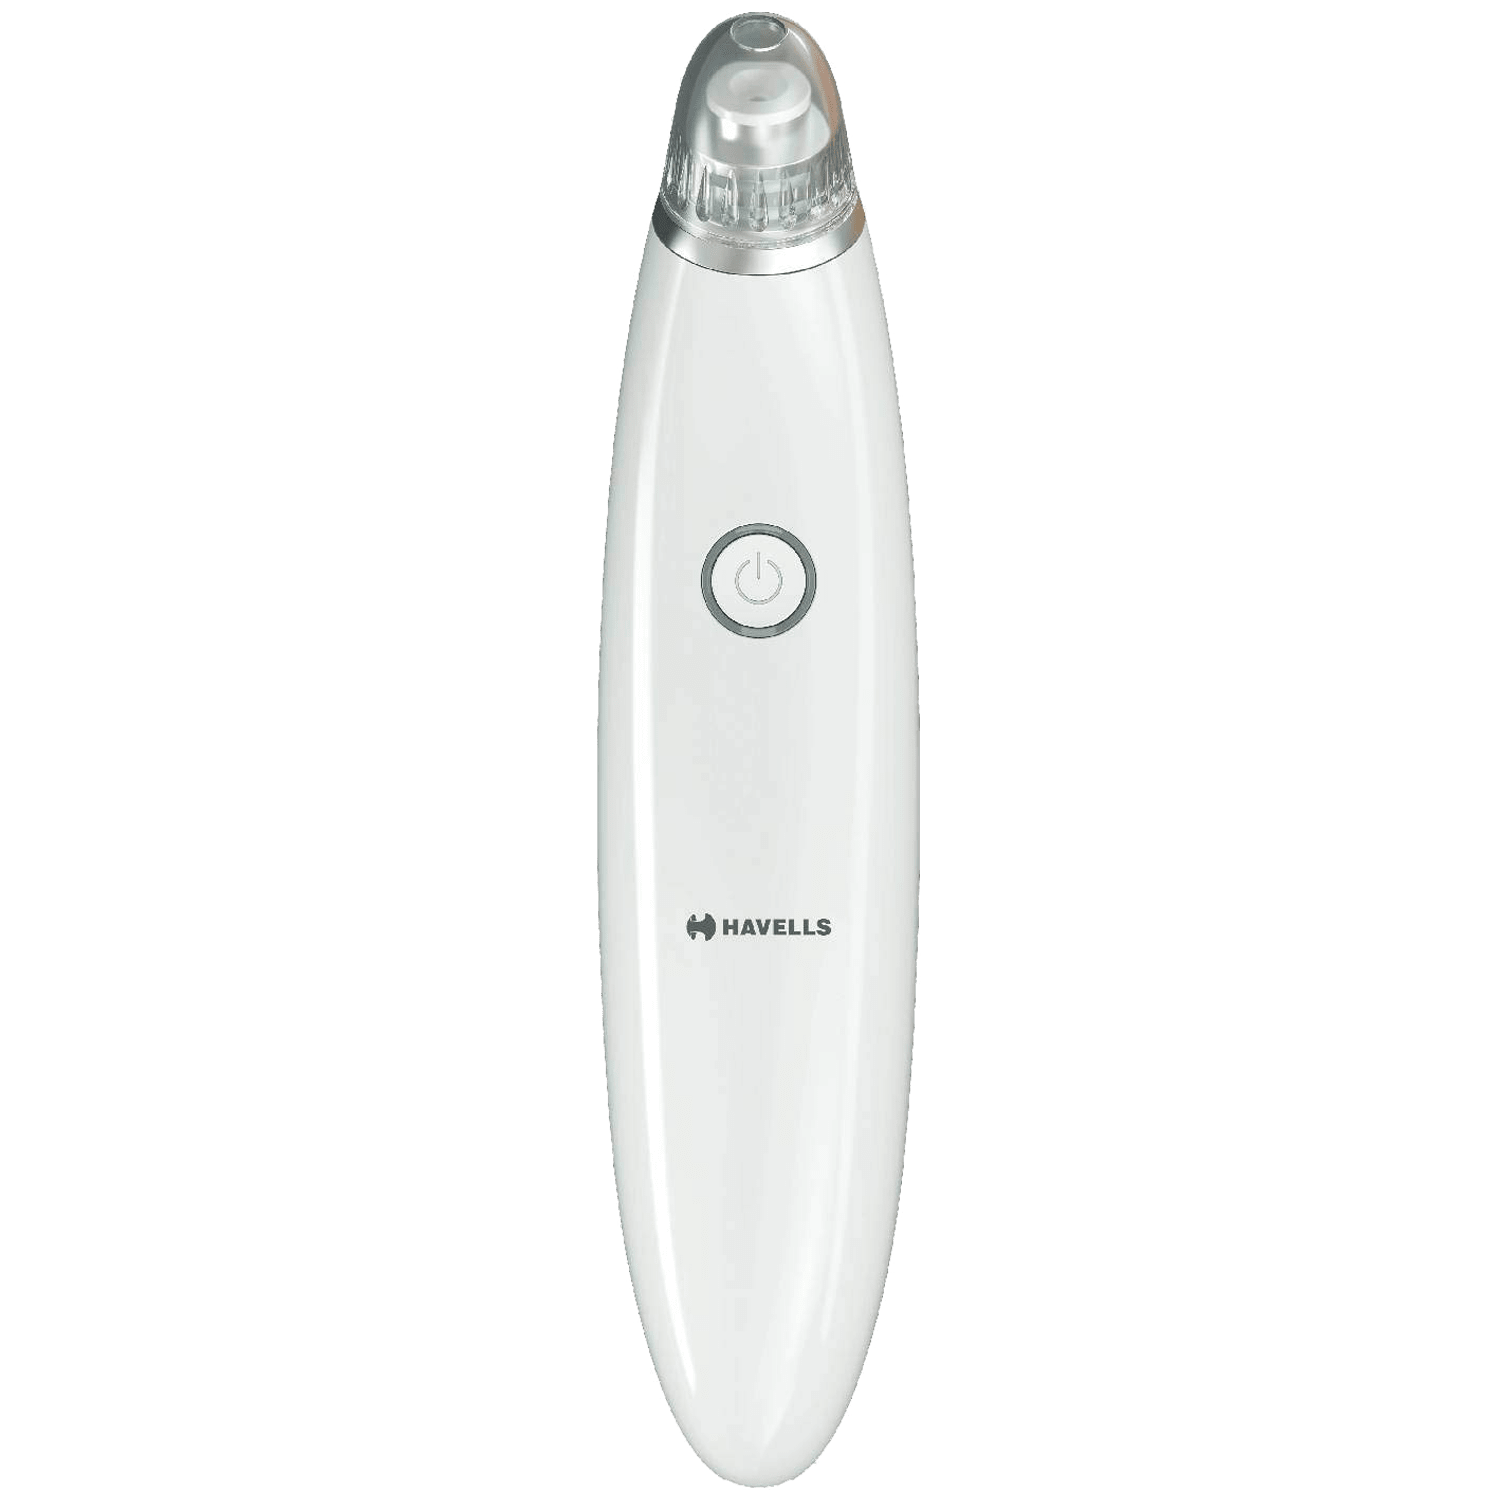 Havells Skin Care Cordless 4-in-1 Pore Cleanser (3 Suction Modes, SC5060, White)